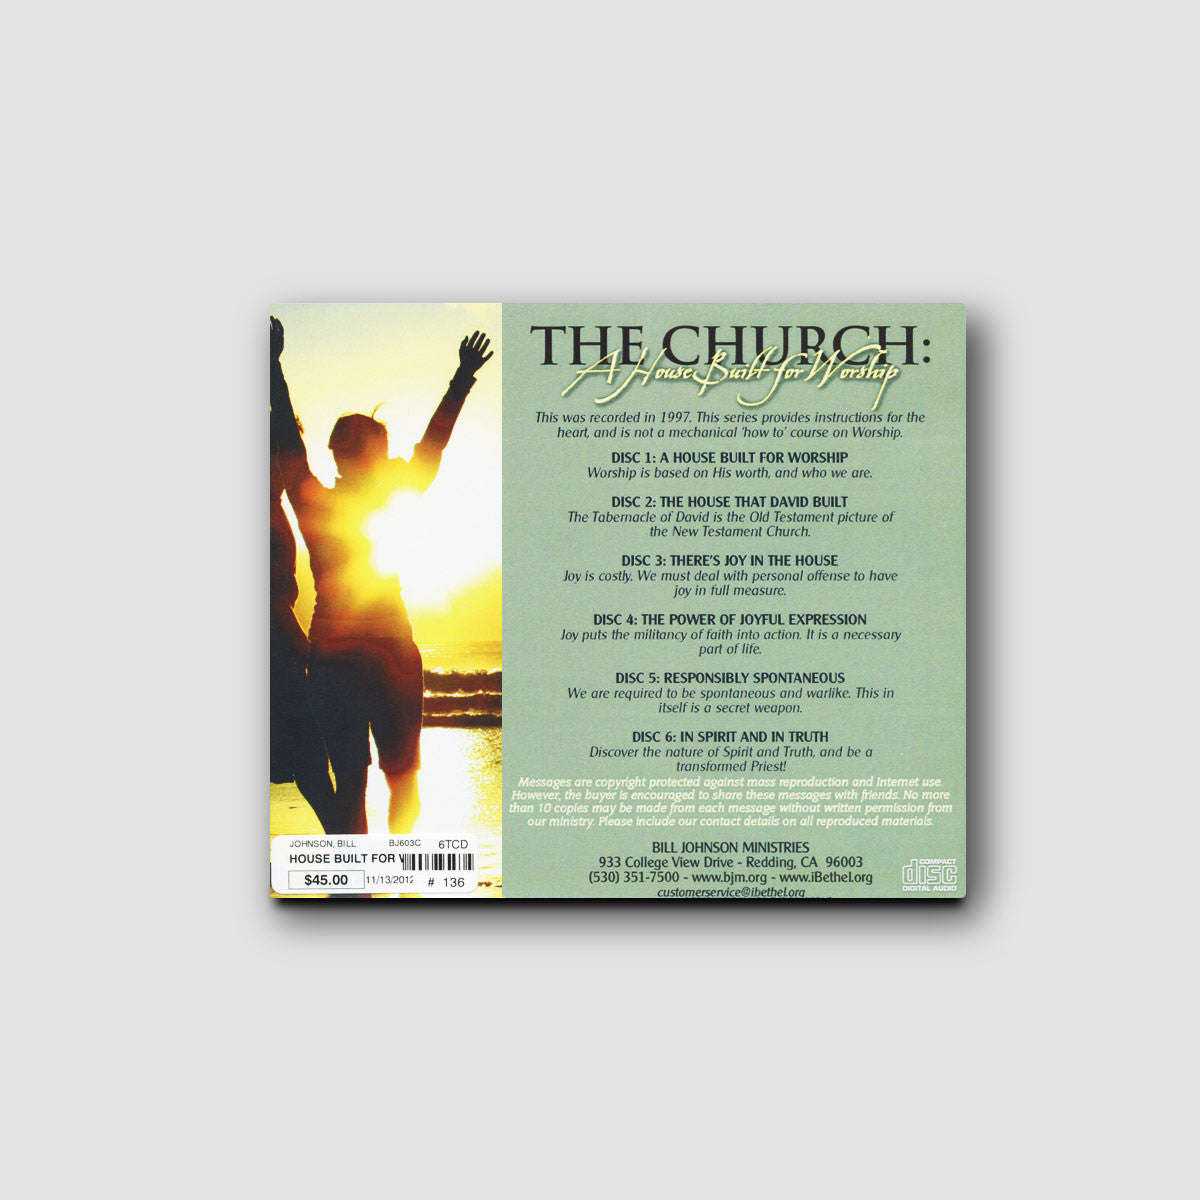 The Church: A House Built for Worship